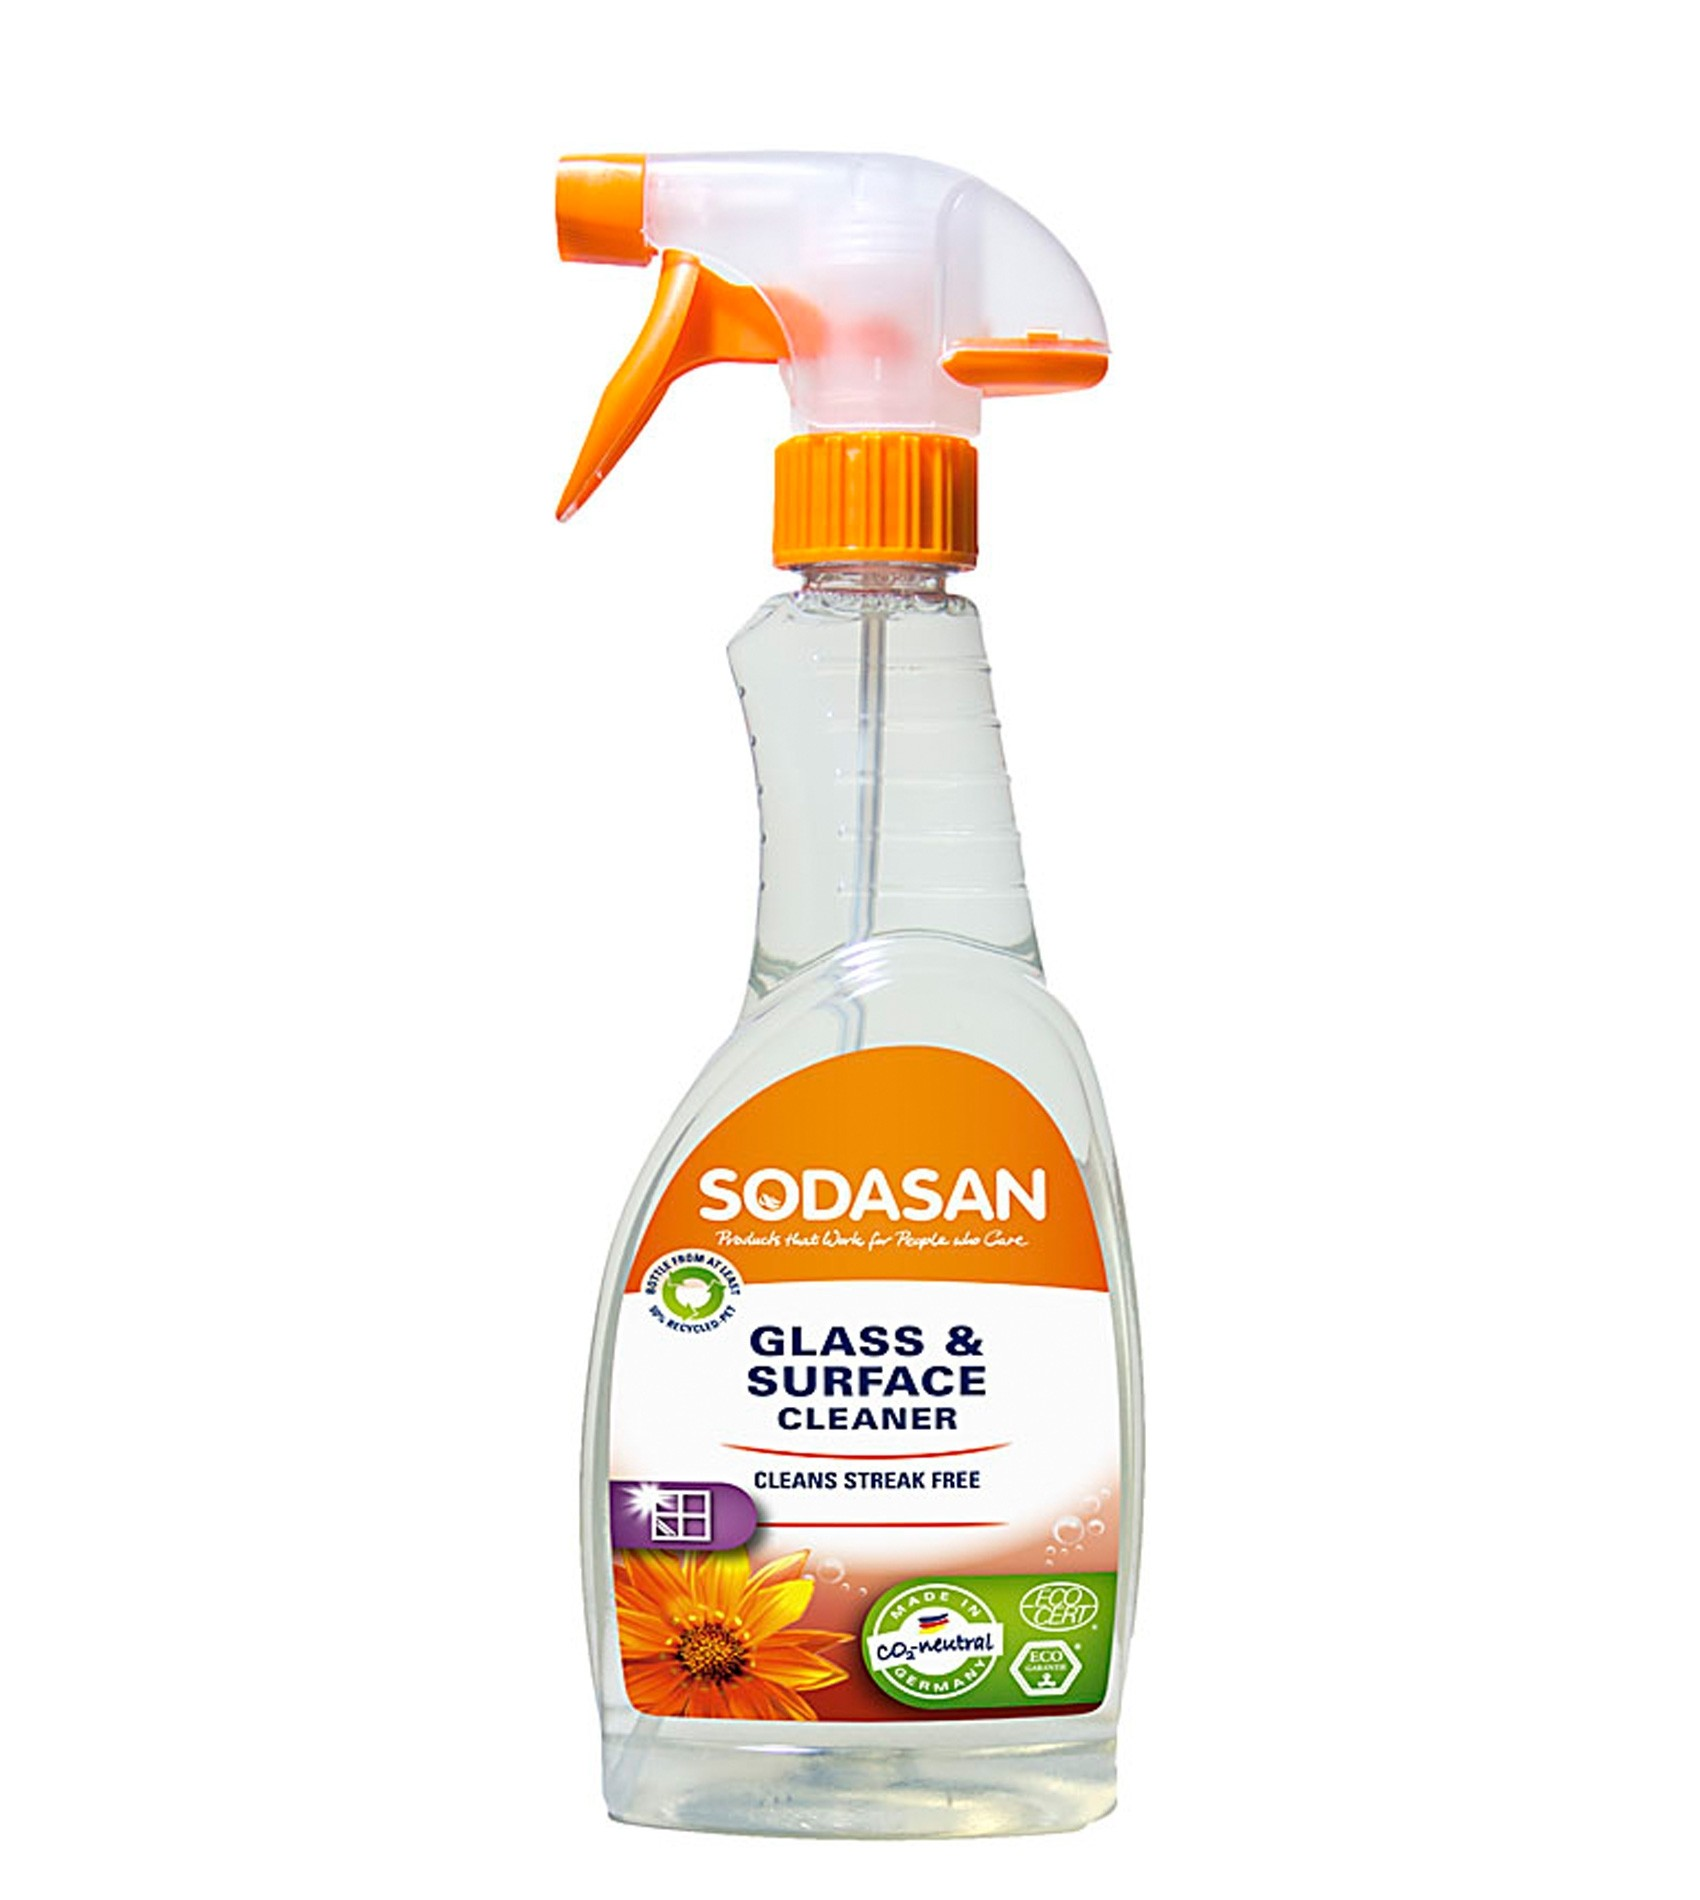 Sodasan Glass and Surface Cleaner